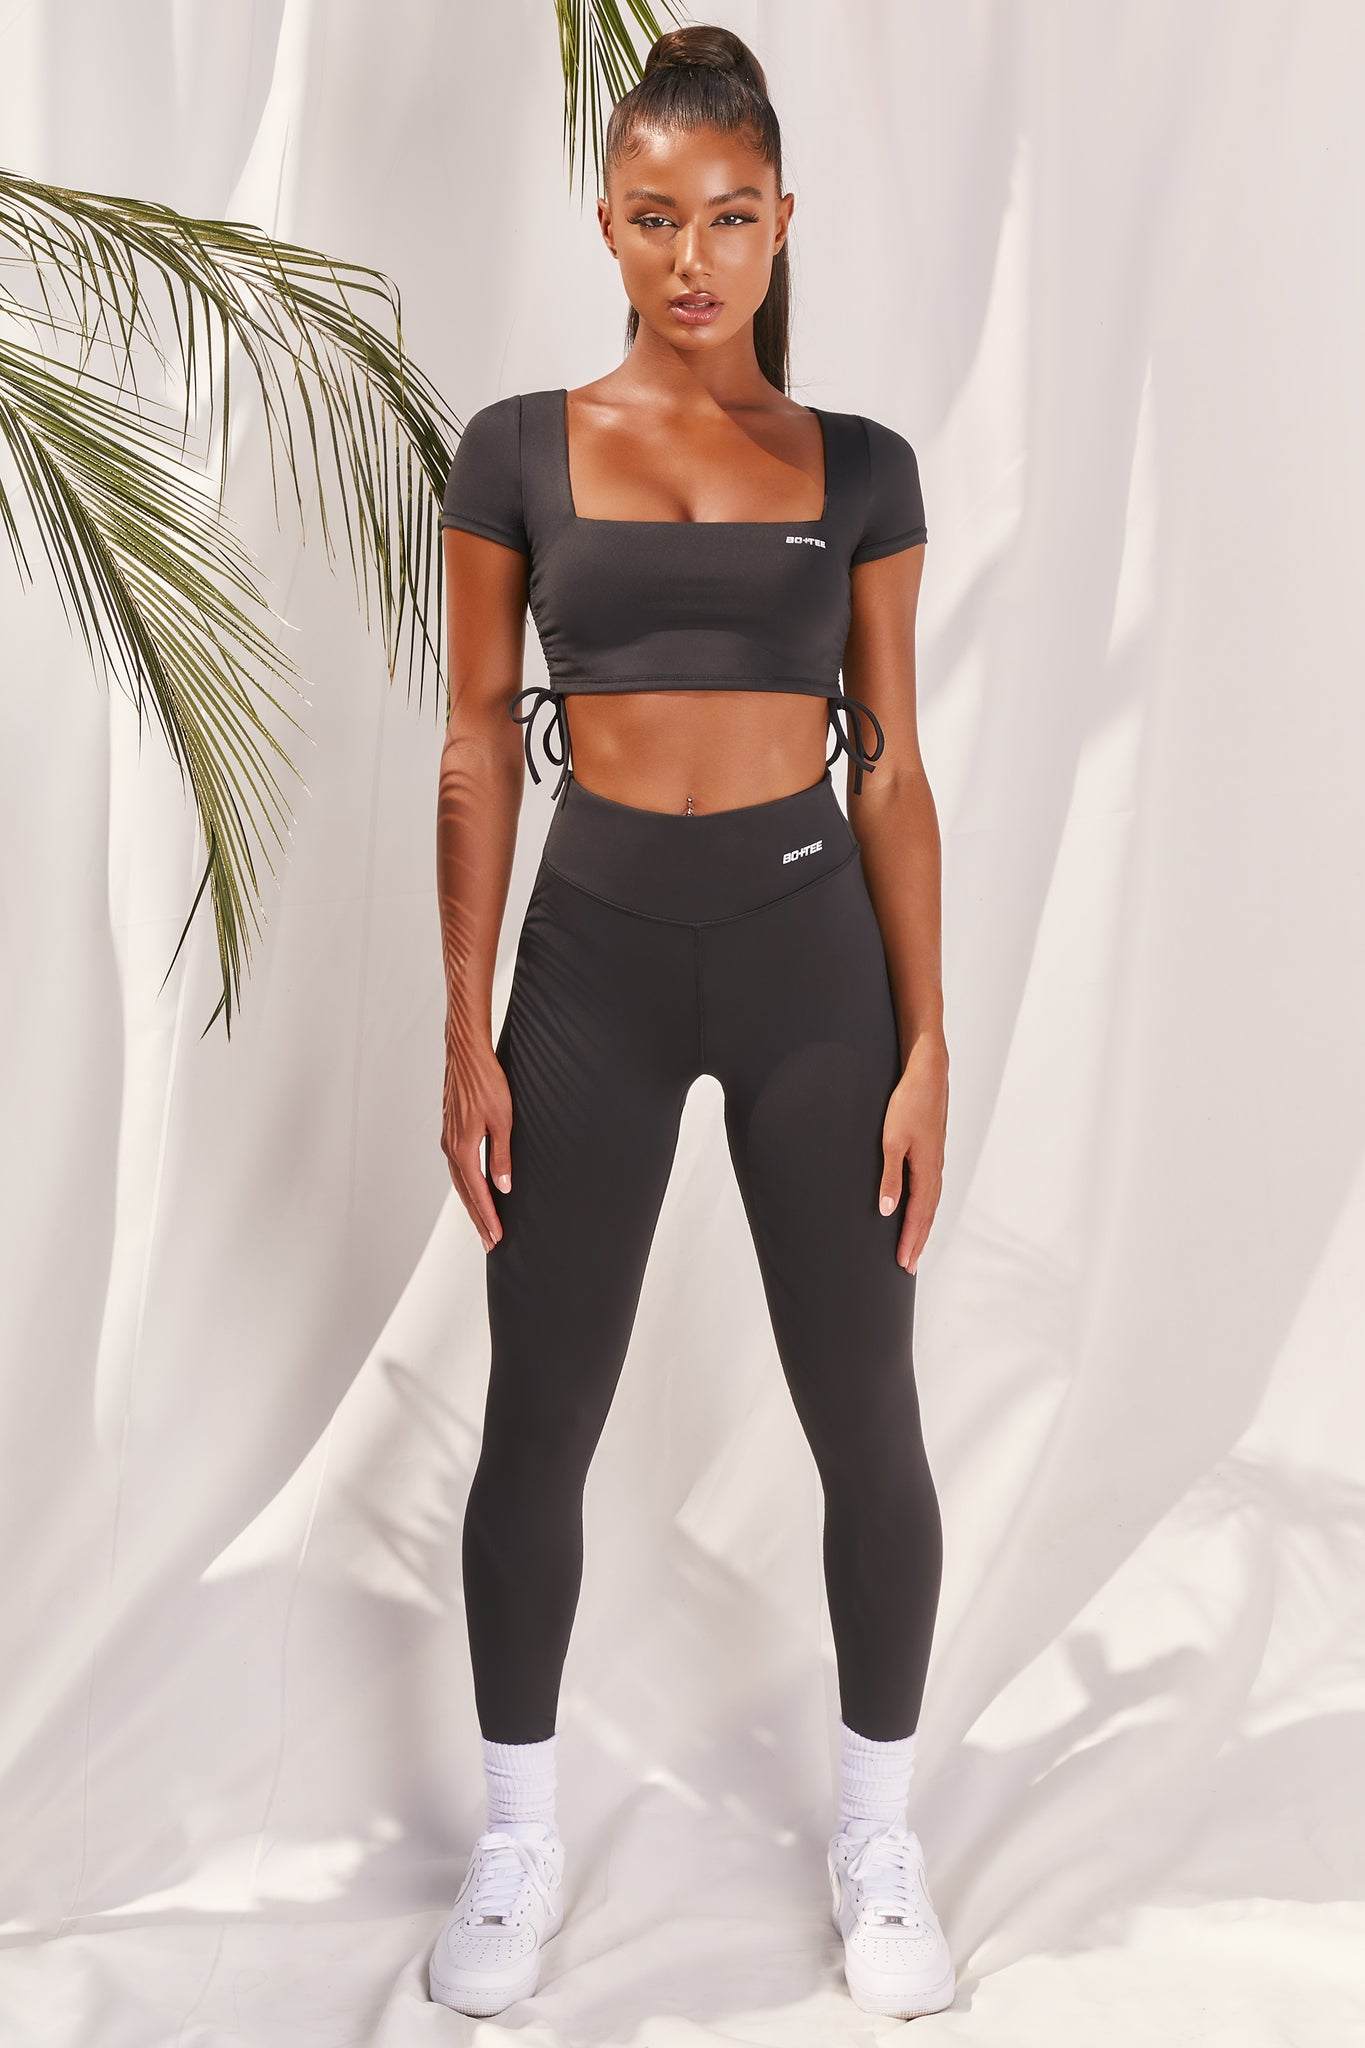 Plain black slinky high waisted full length gym leggings with rear ruched seam. Image 1 of 6.